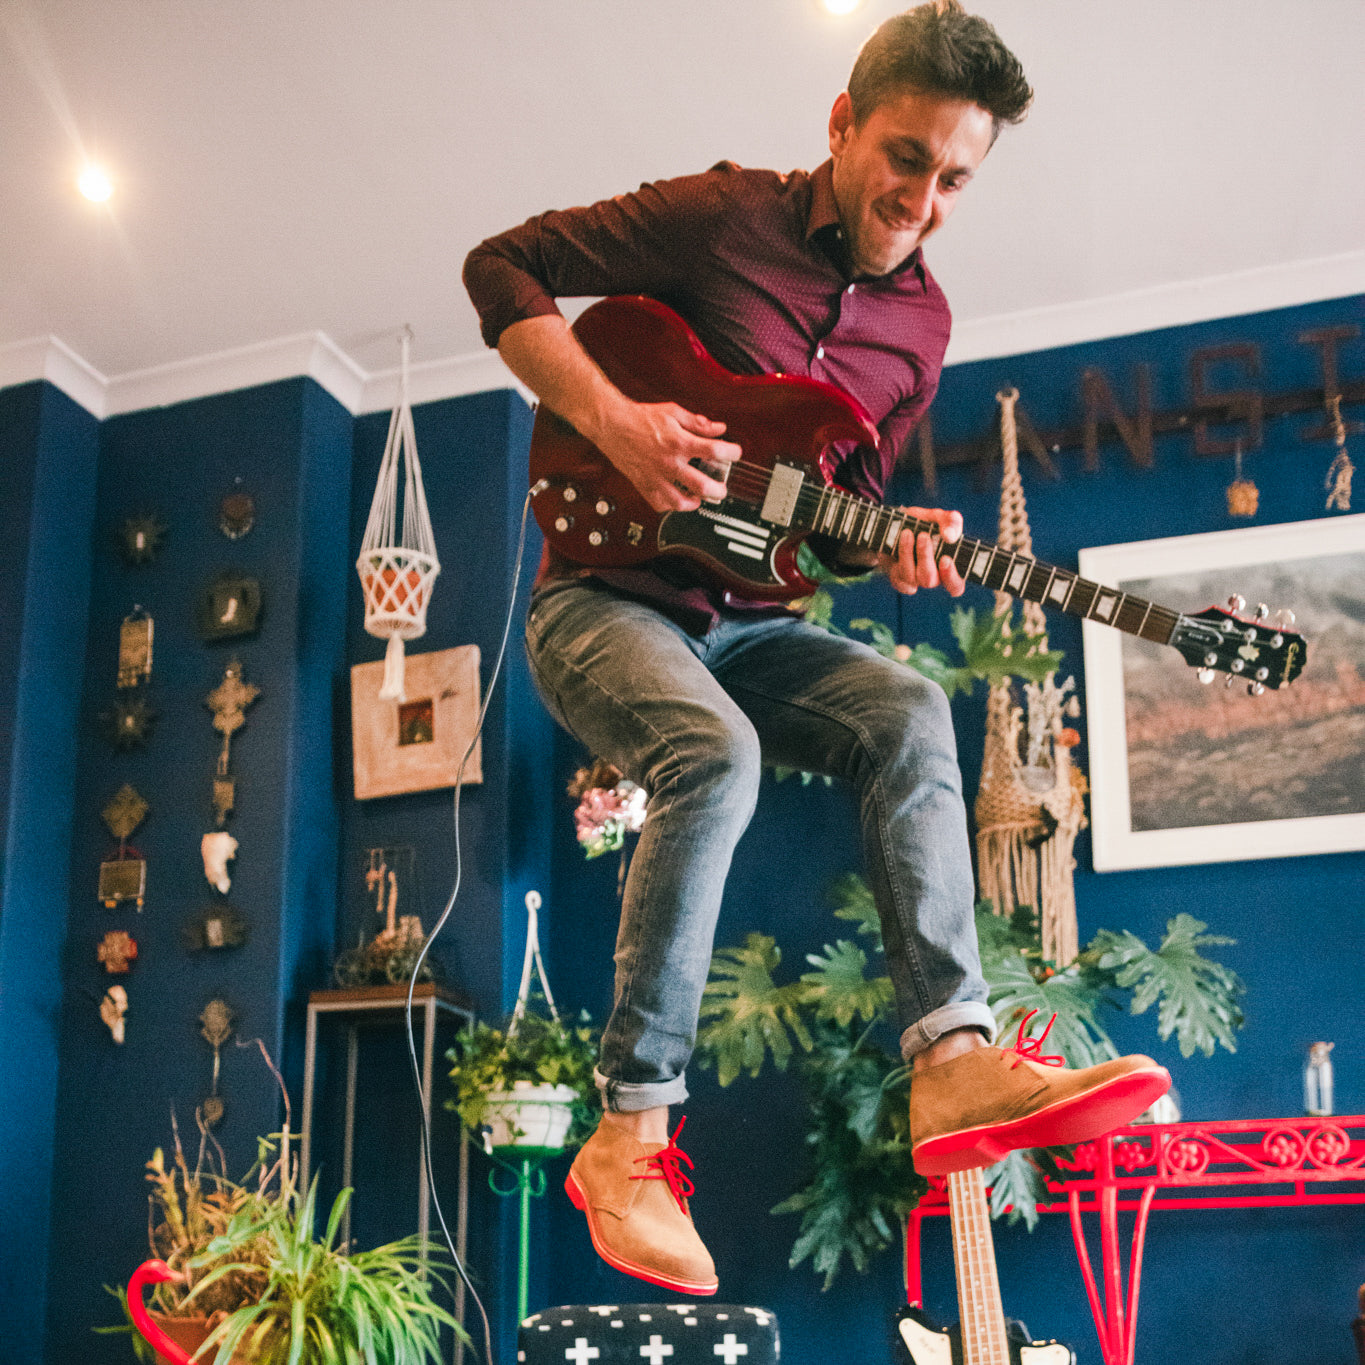 Veldskoen shoes and boots or known as vellies heritage boot ethically and sustainably handcrafted in South Africa sold in united states man weraing red laced suede heritage and jumping high in the air playing guitar